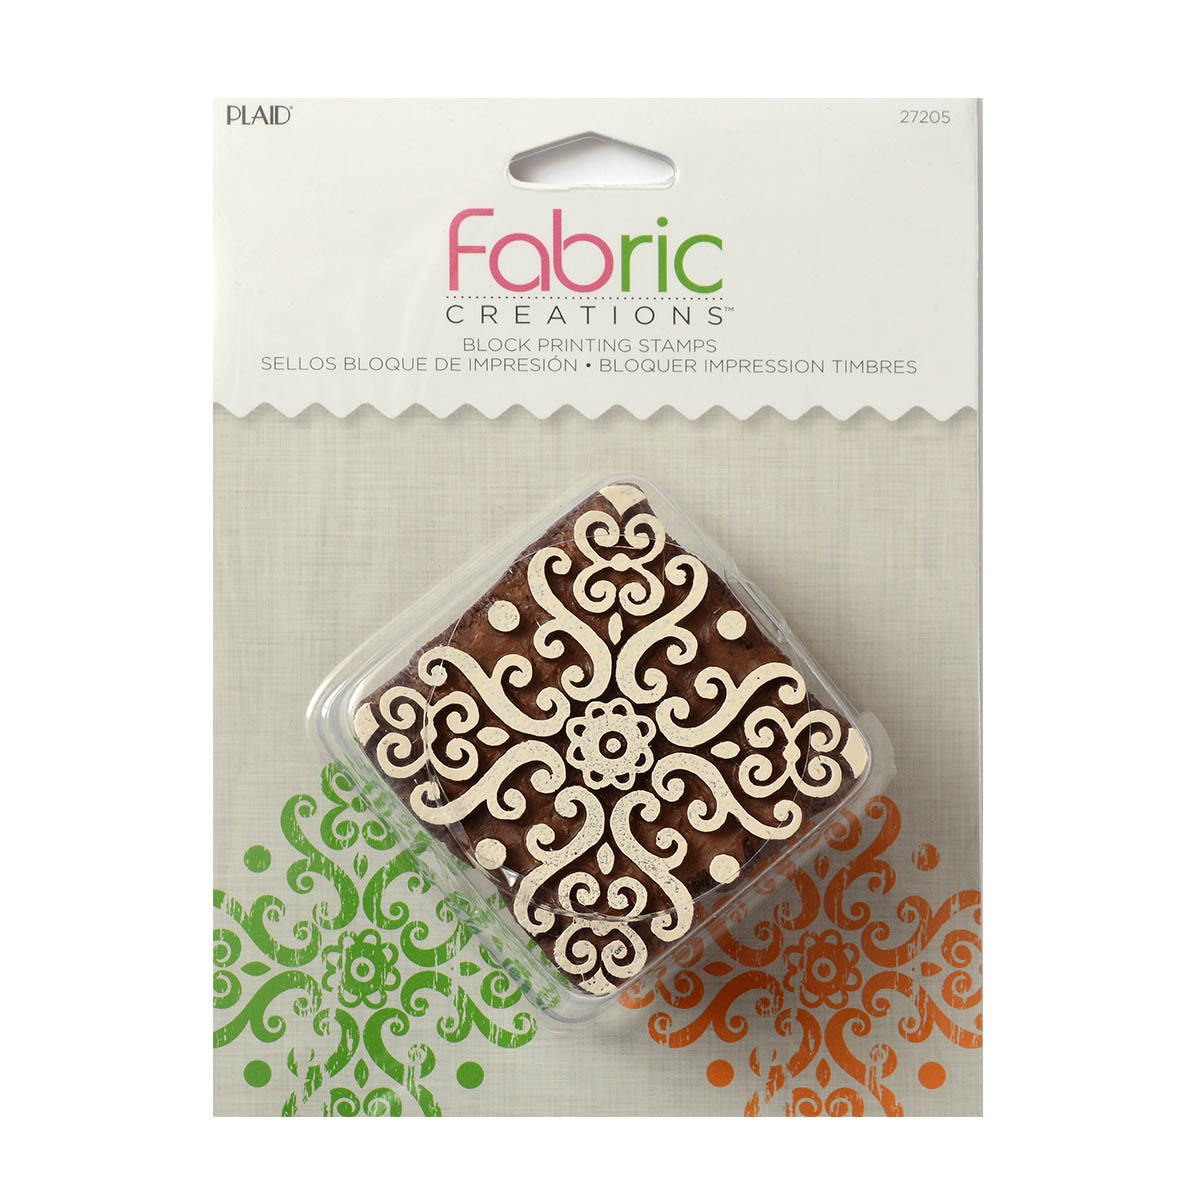 Fabric Creations™ Block Printing Stamps - Medium - Baroque Medallion